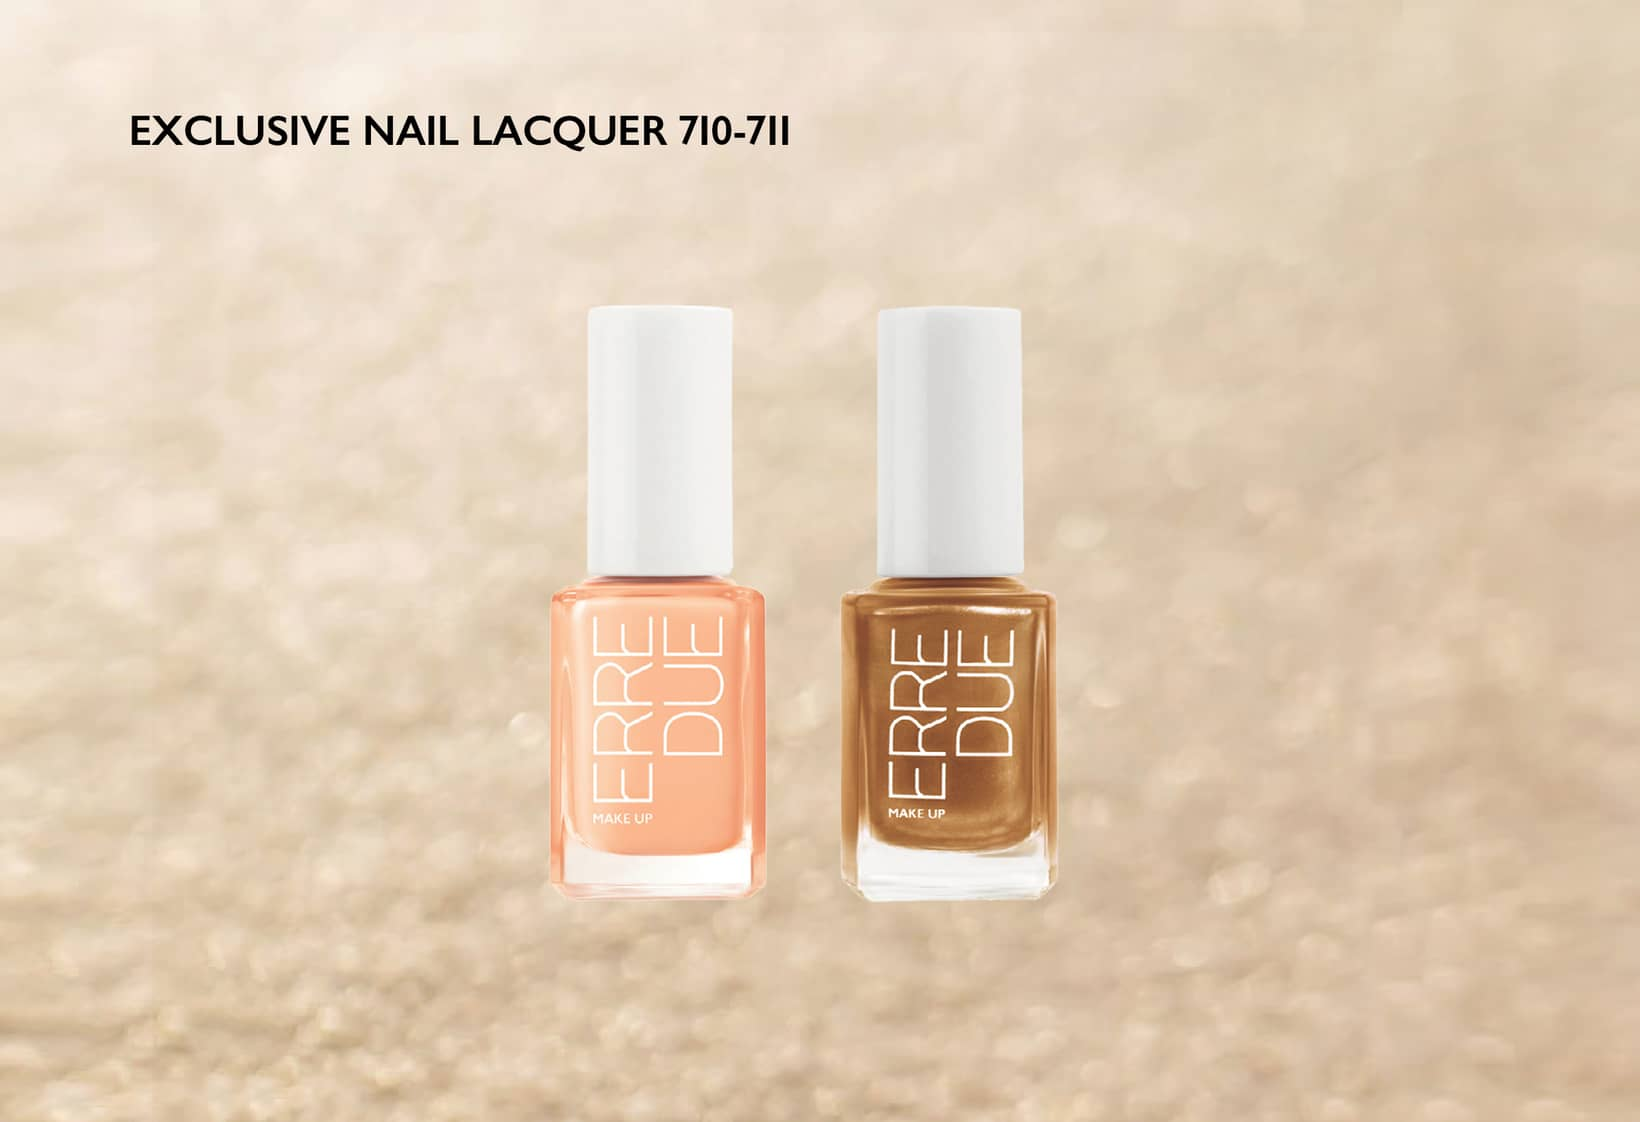 EXCLUSIVE NAIL LACQUER 710-711